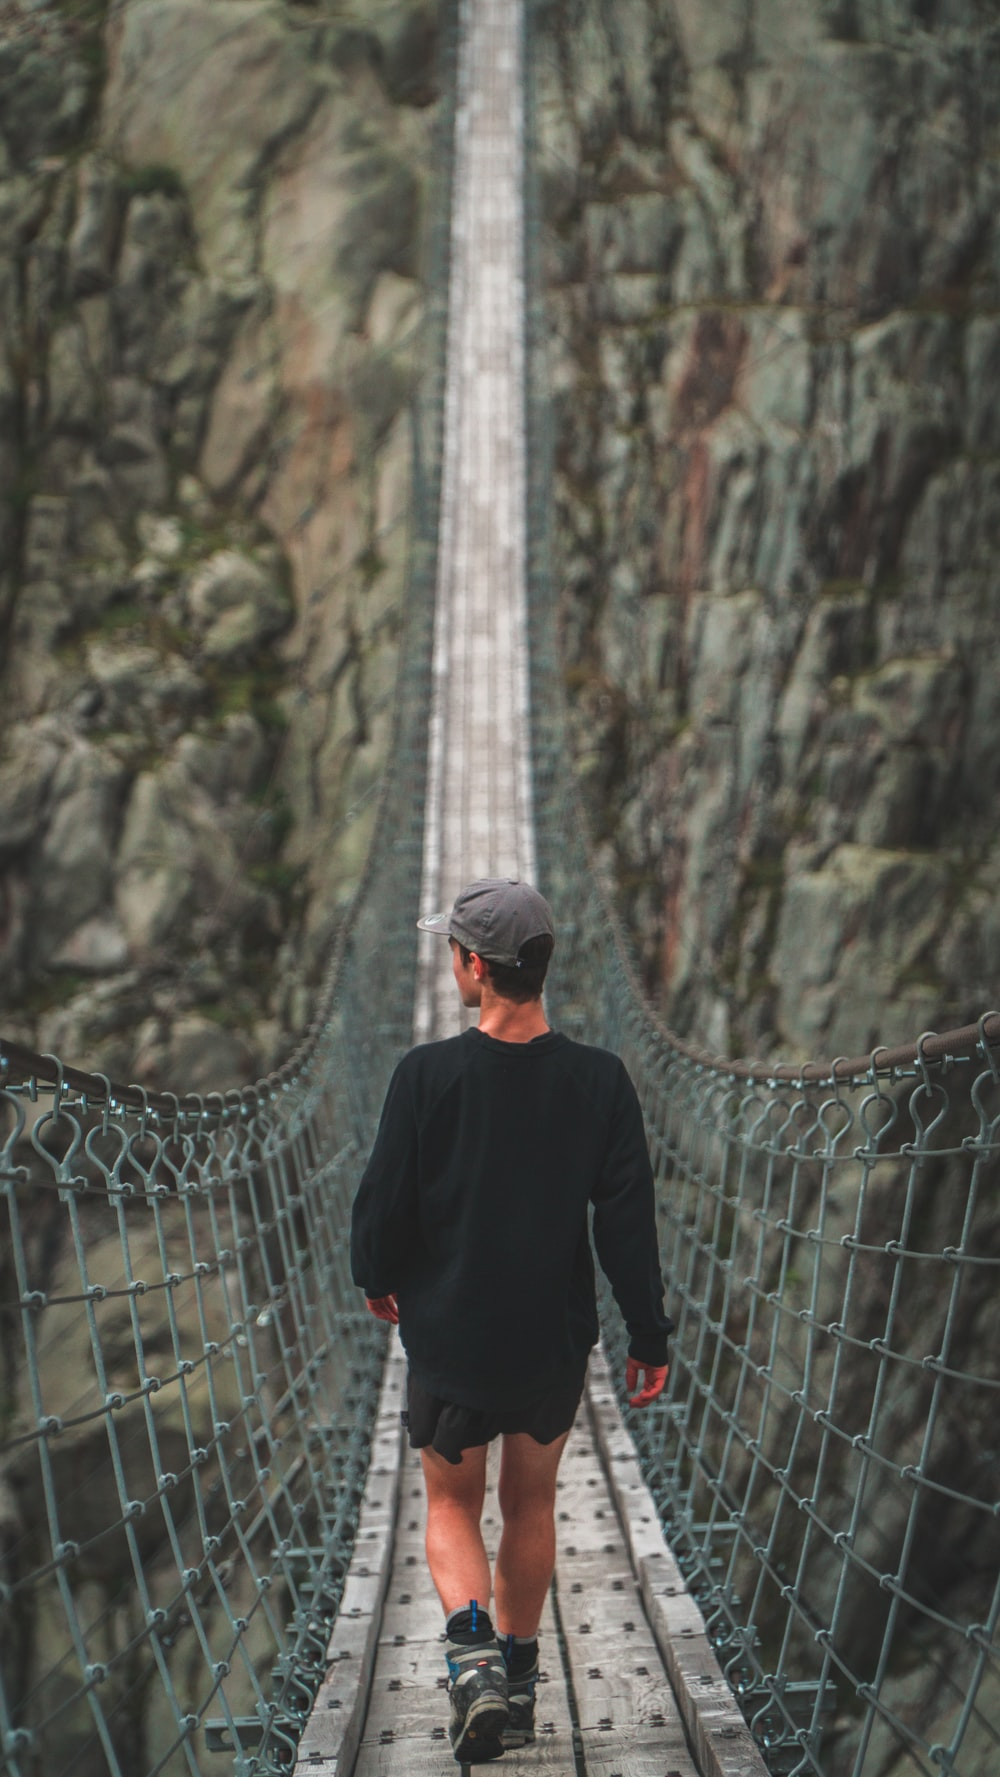 man walking on hanging bridge during daytime